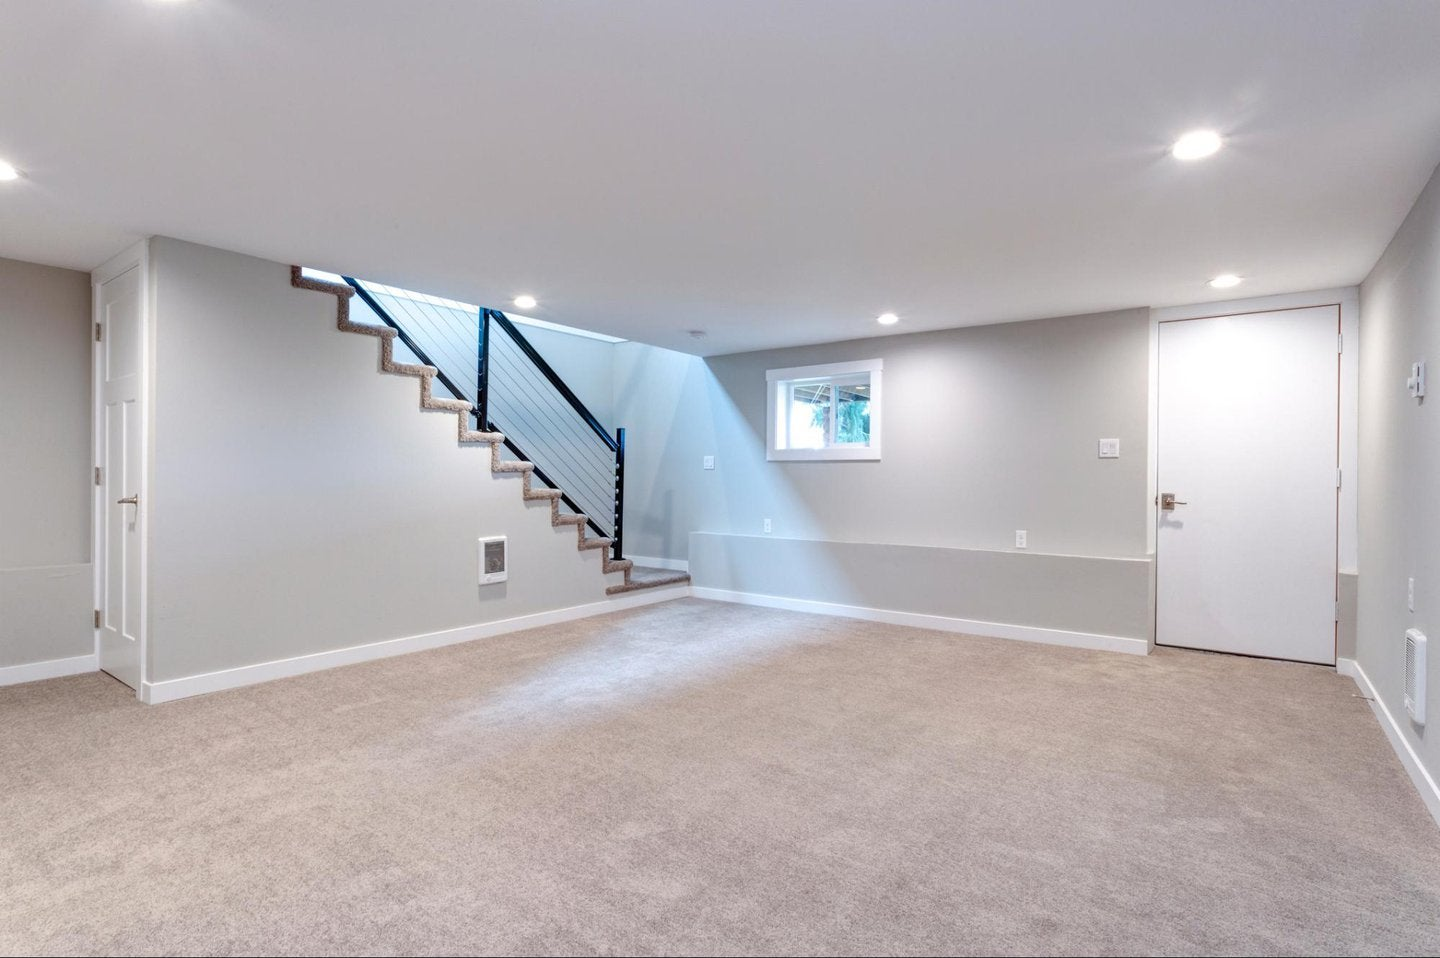 4 Reasons To Finish Your Basement